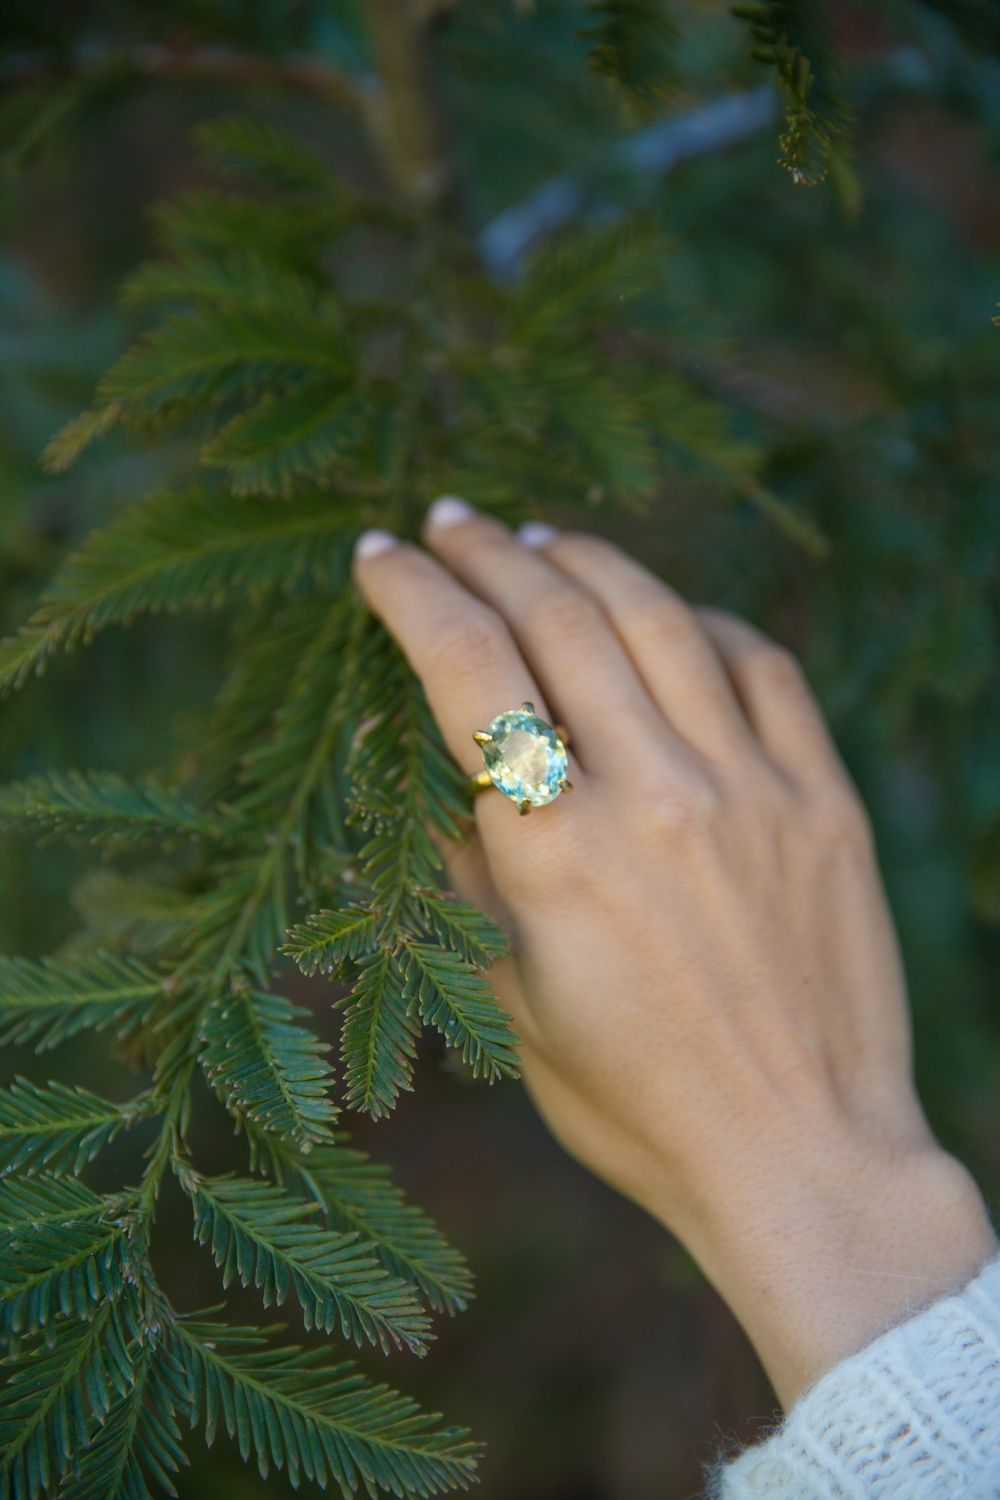 Silver May Sparkler Rings - not a turquoise/aquamarine so I could wear this colour <3 Green enough for me!